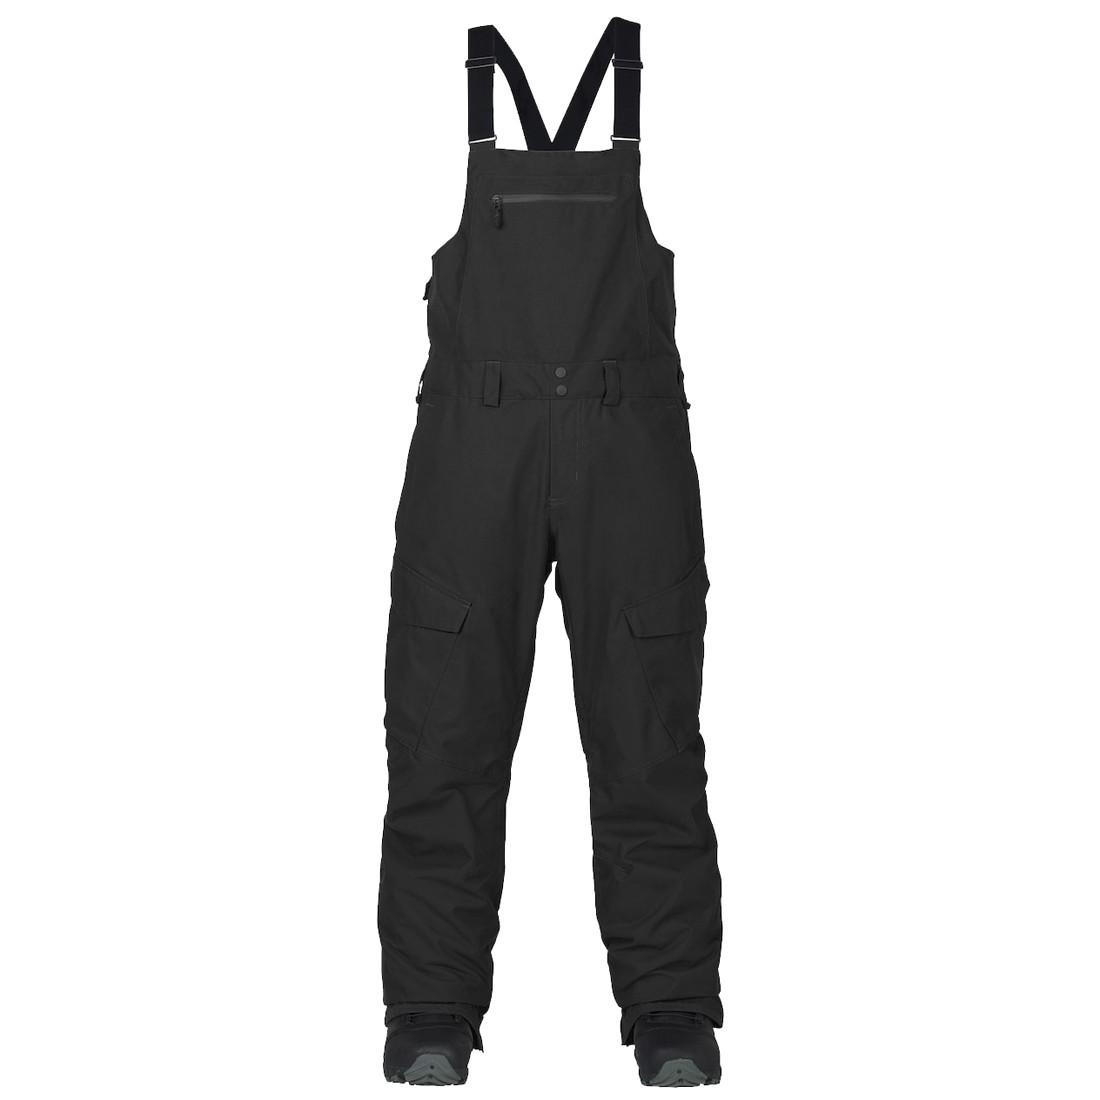 Burton Штаны для сноуборда Burton Reserve Bib Pant TRUE BLACK, , , FW18 S маска для сноуборда женская roxy sunset art series true black savanna